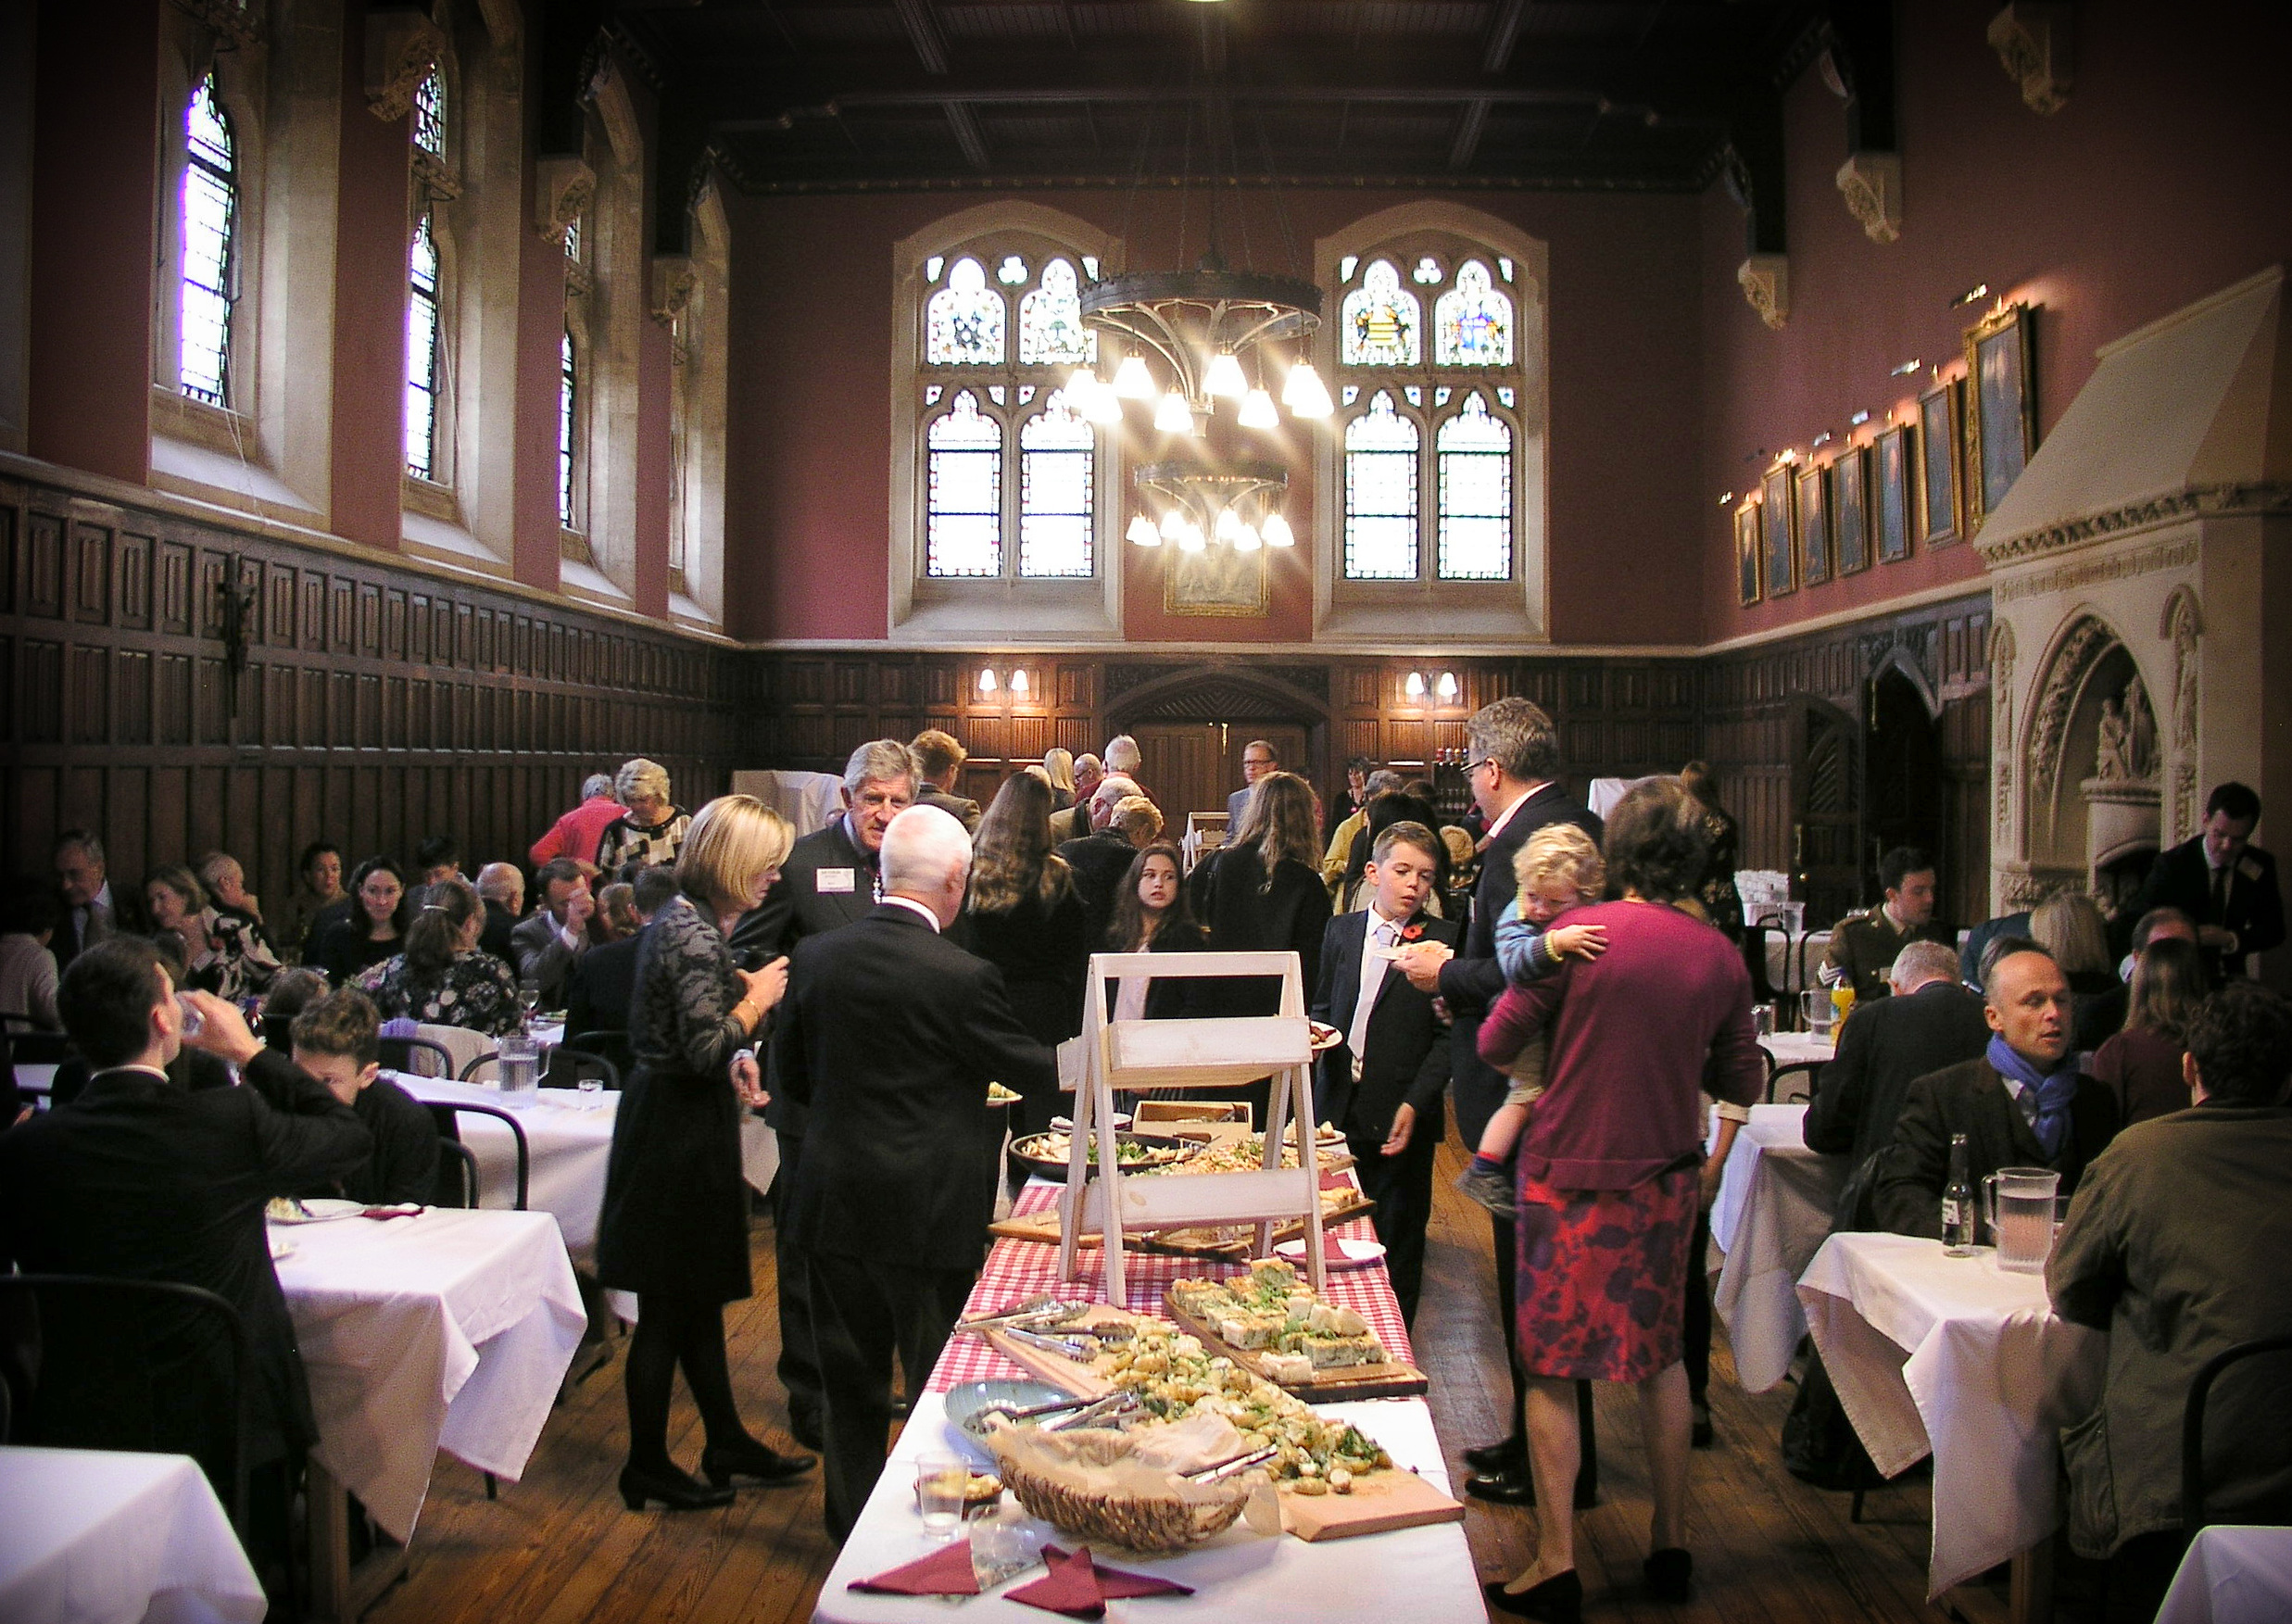 Family Gathering at Downside School